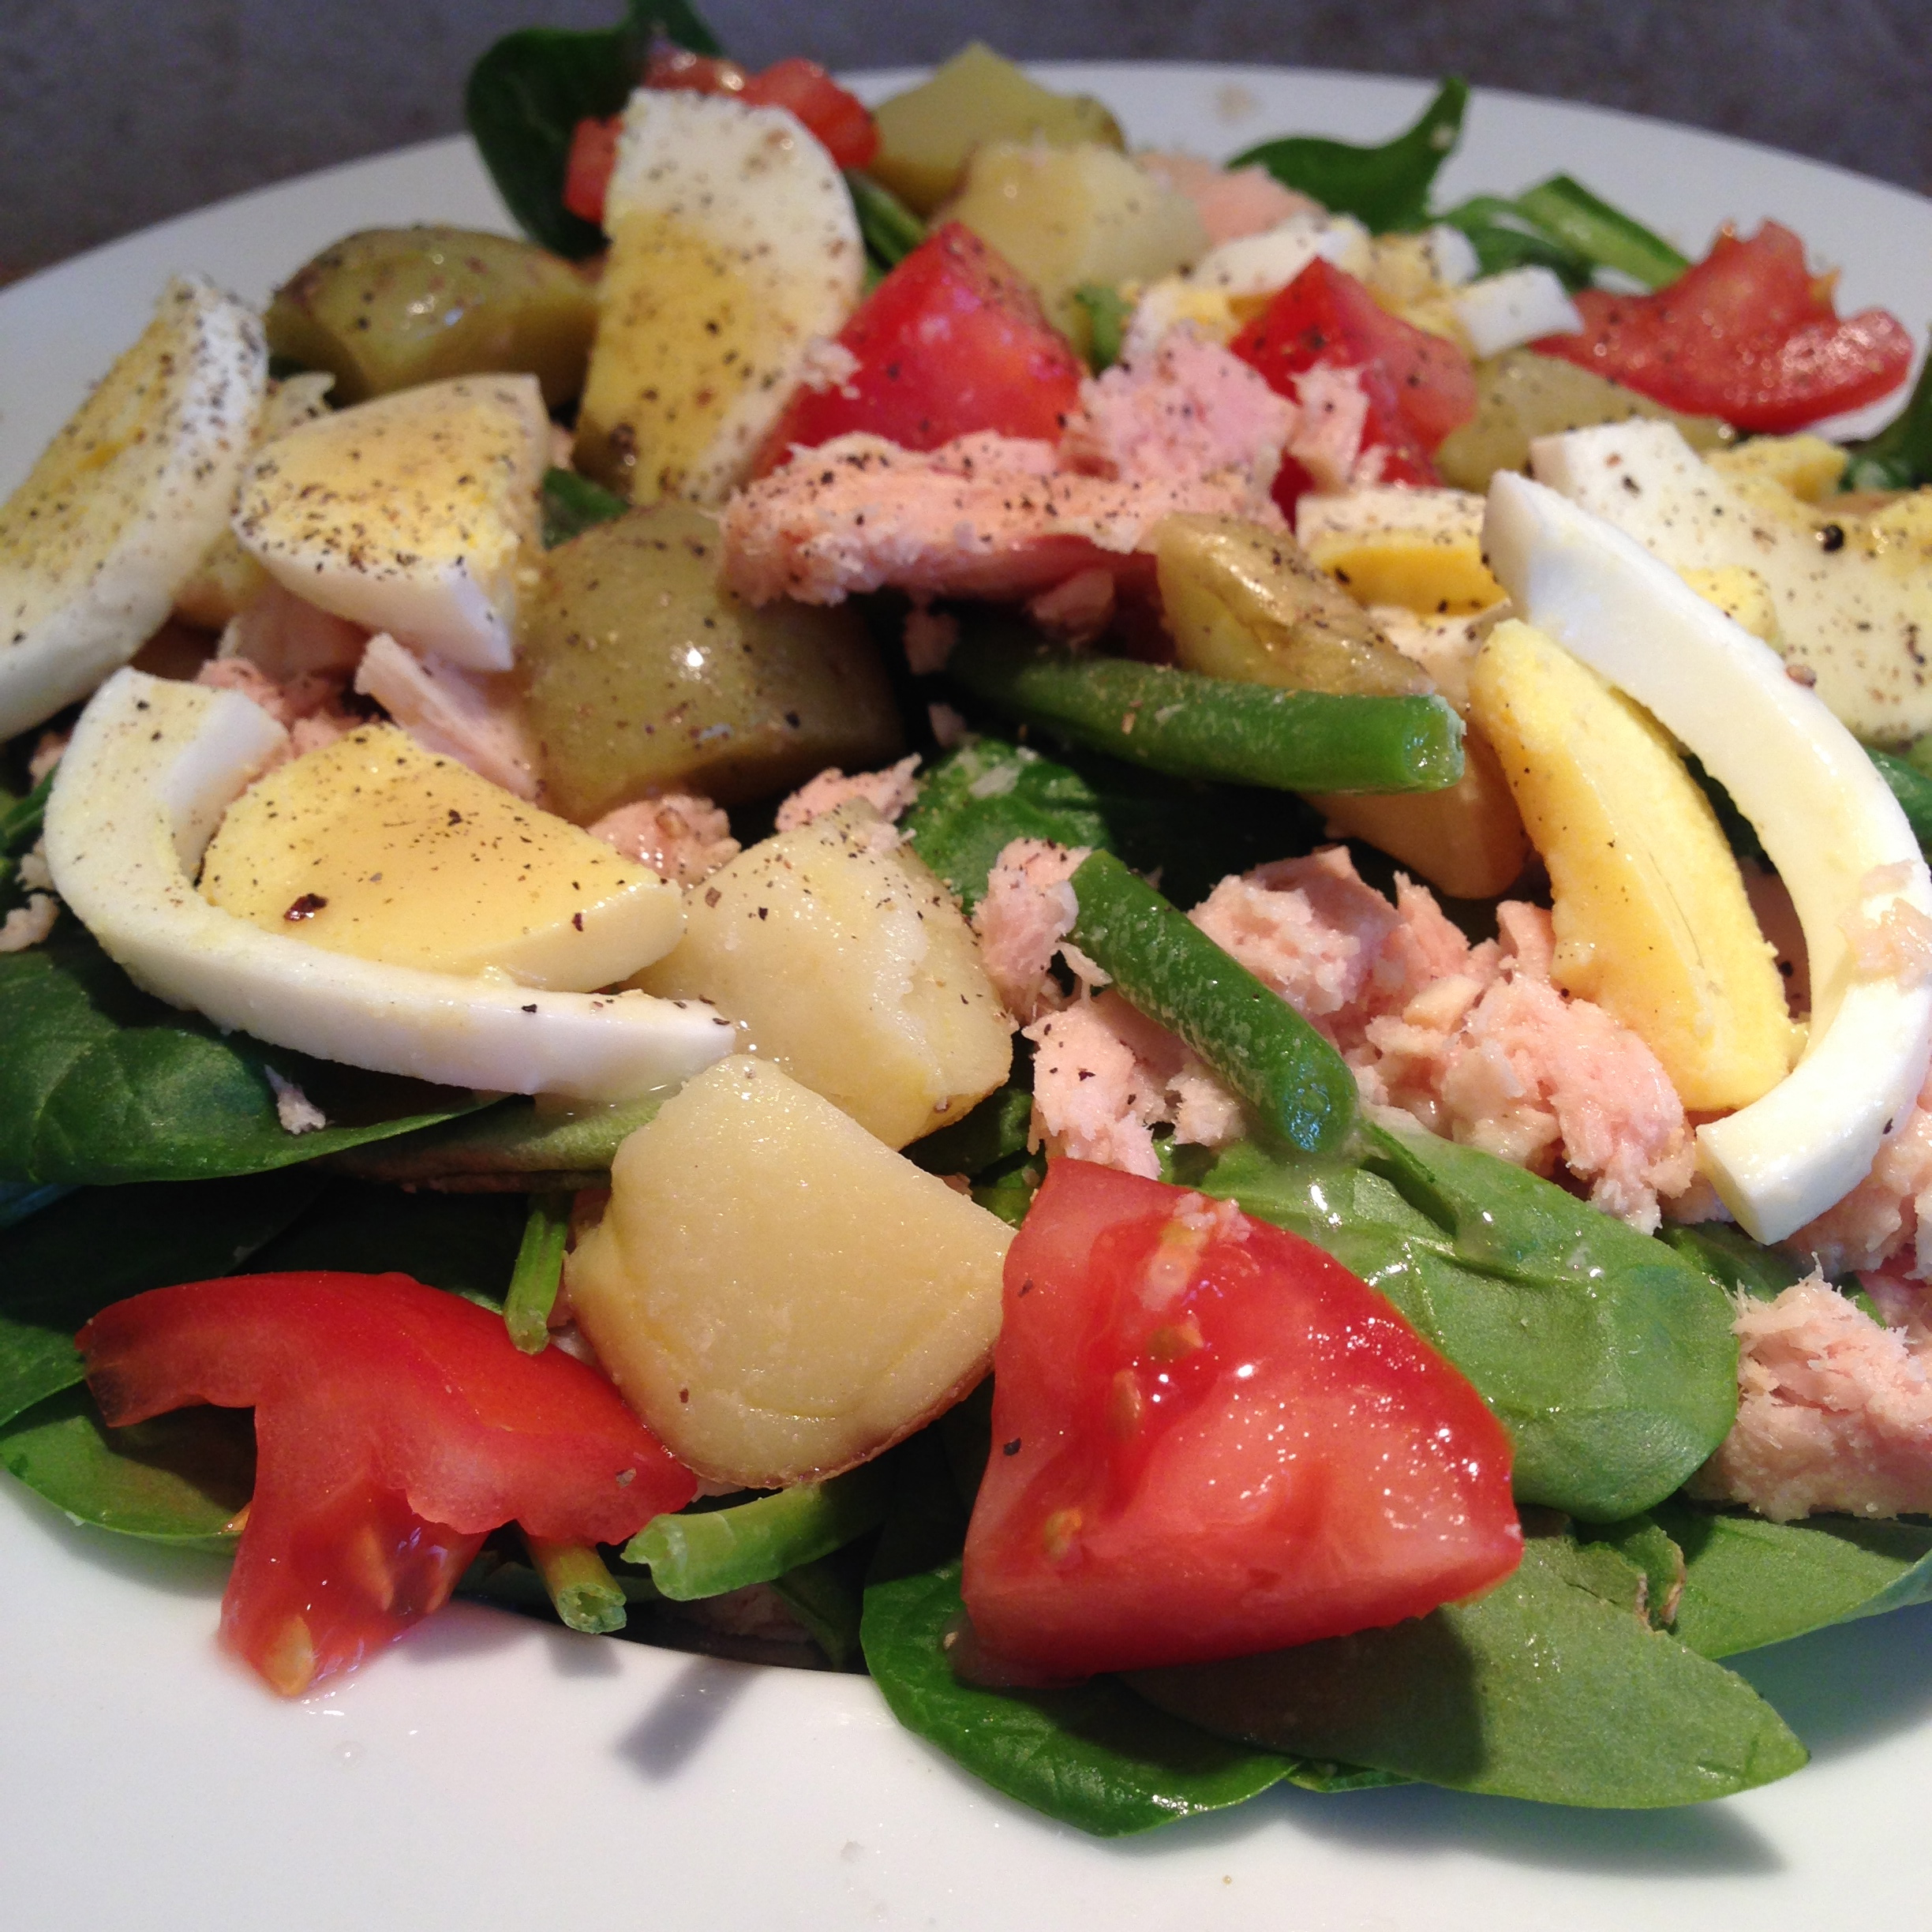 Hard Boiled Eggs, Spinach, and Tuna Potato Salad